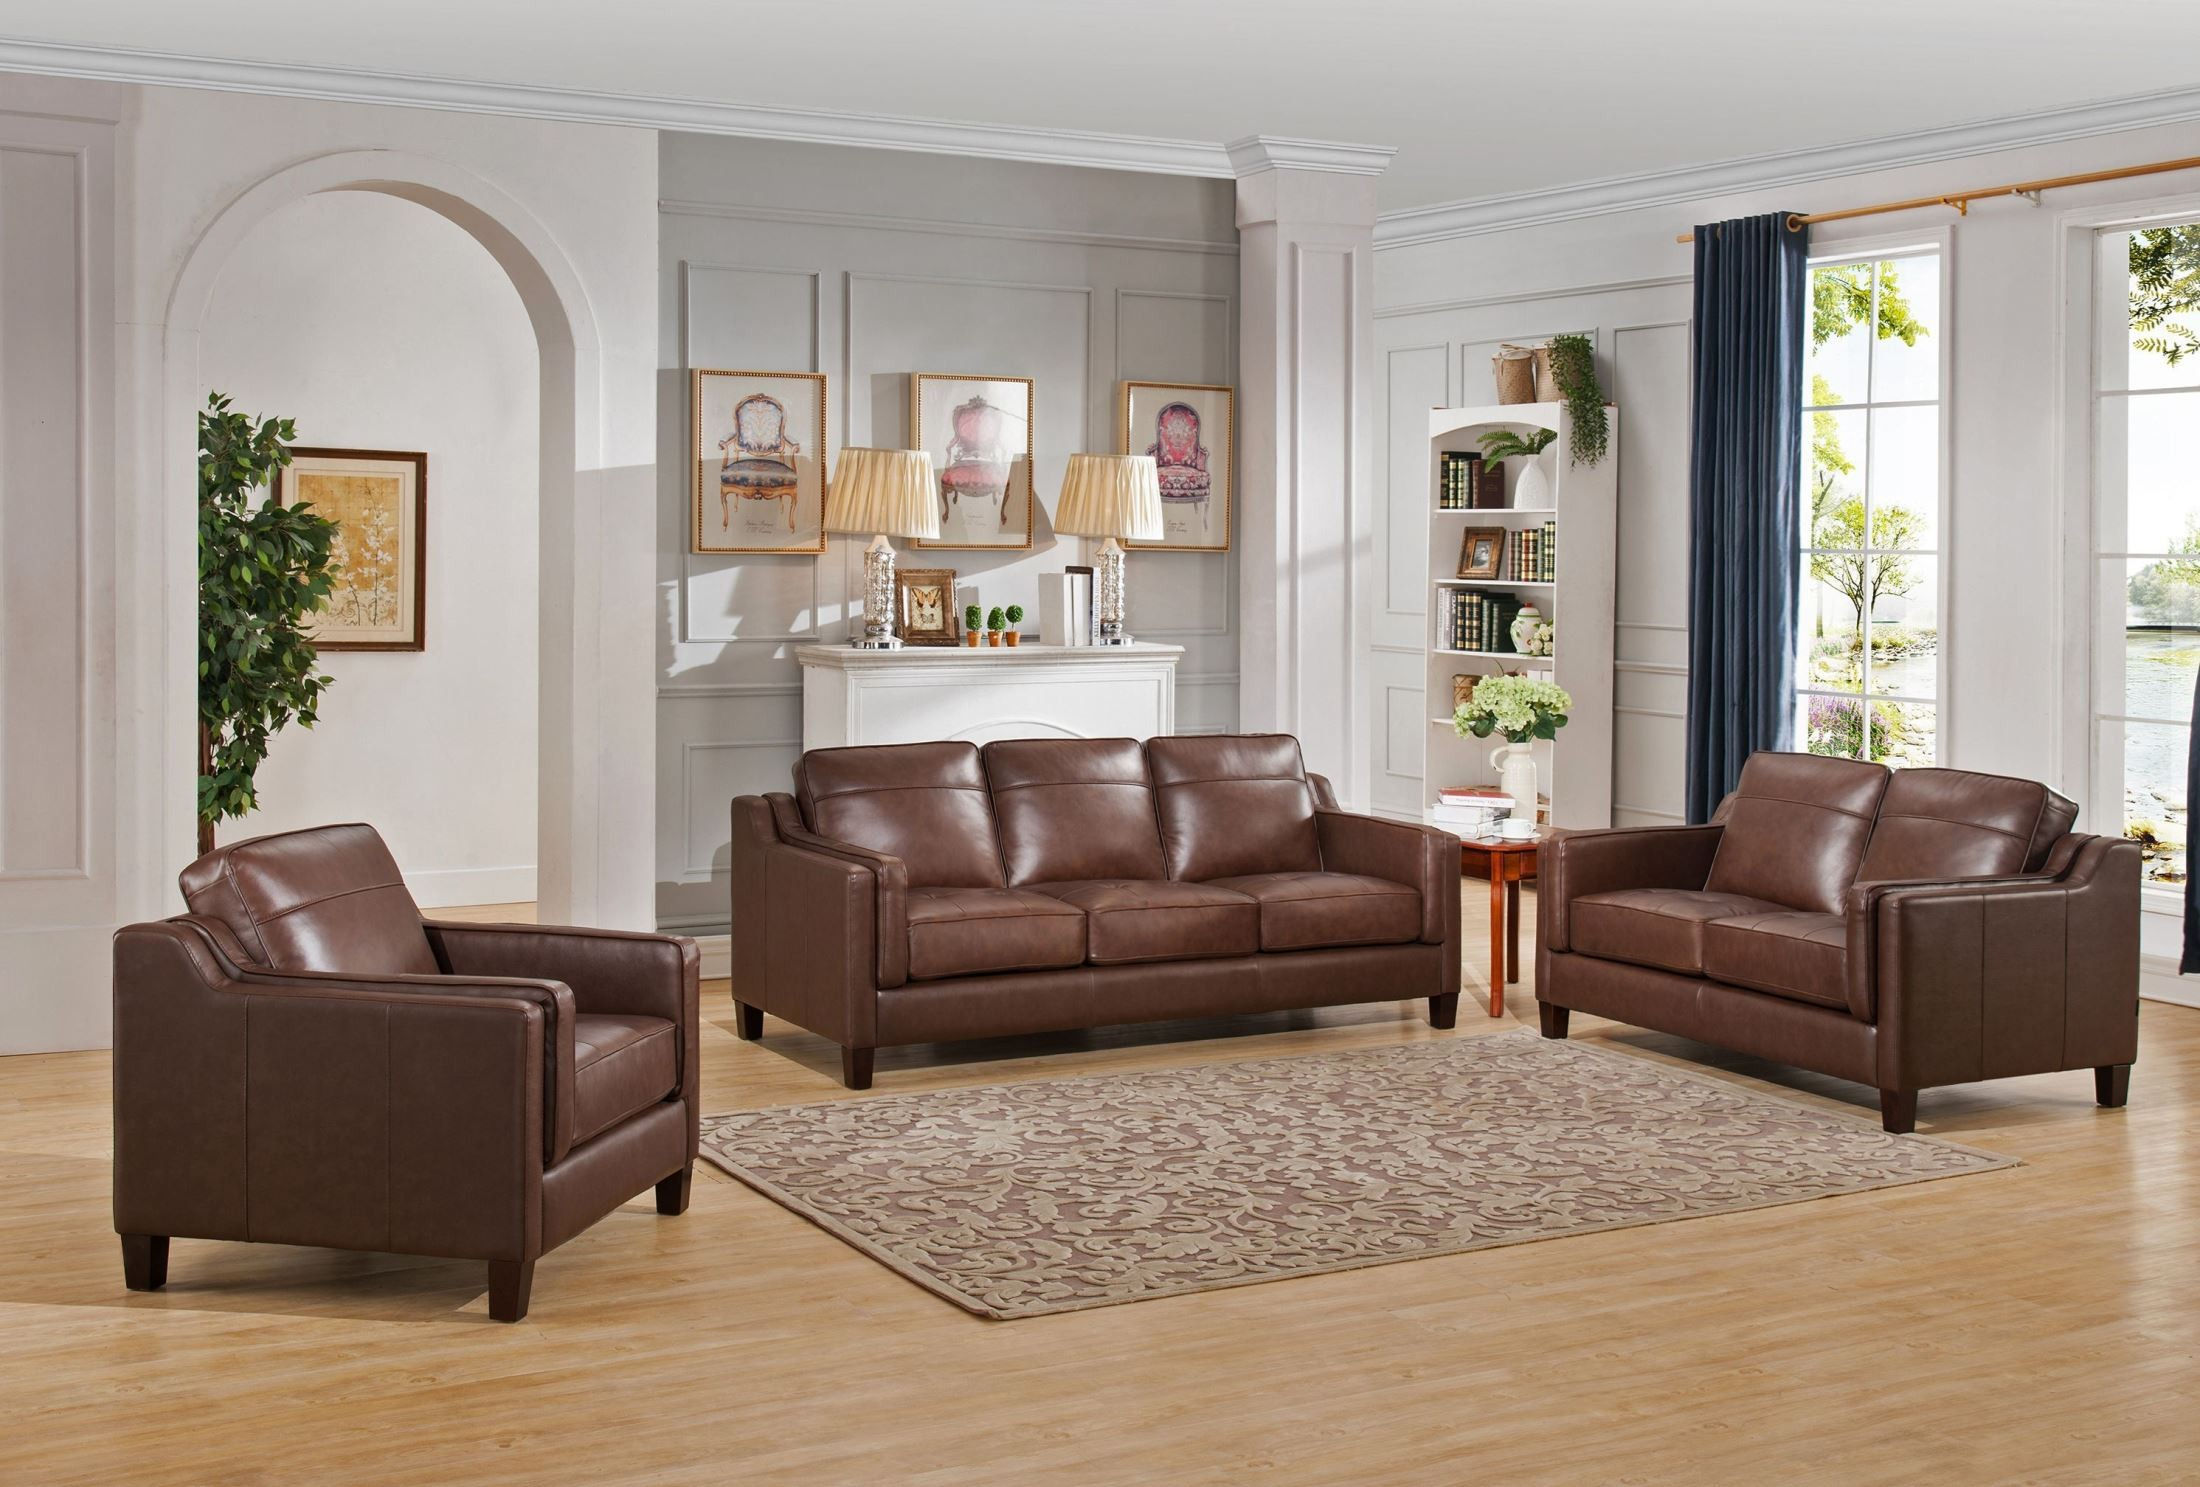 Acorn brown 3 piece leather living room set from amax for 3 piece living room furniture